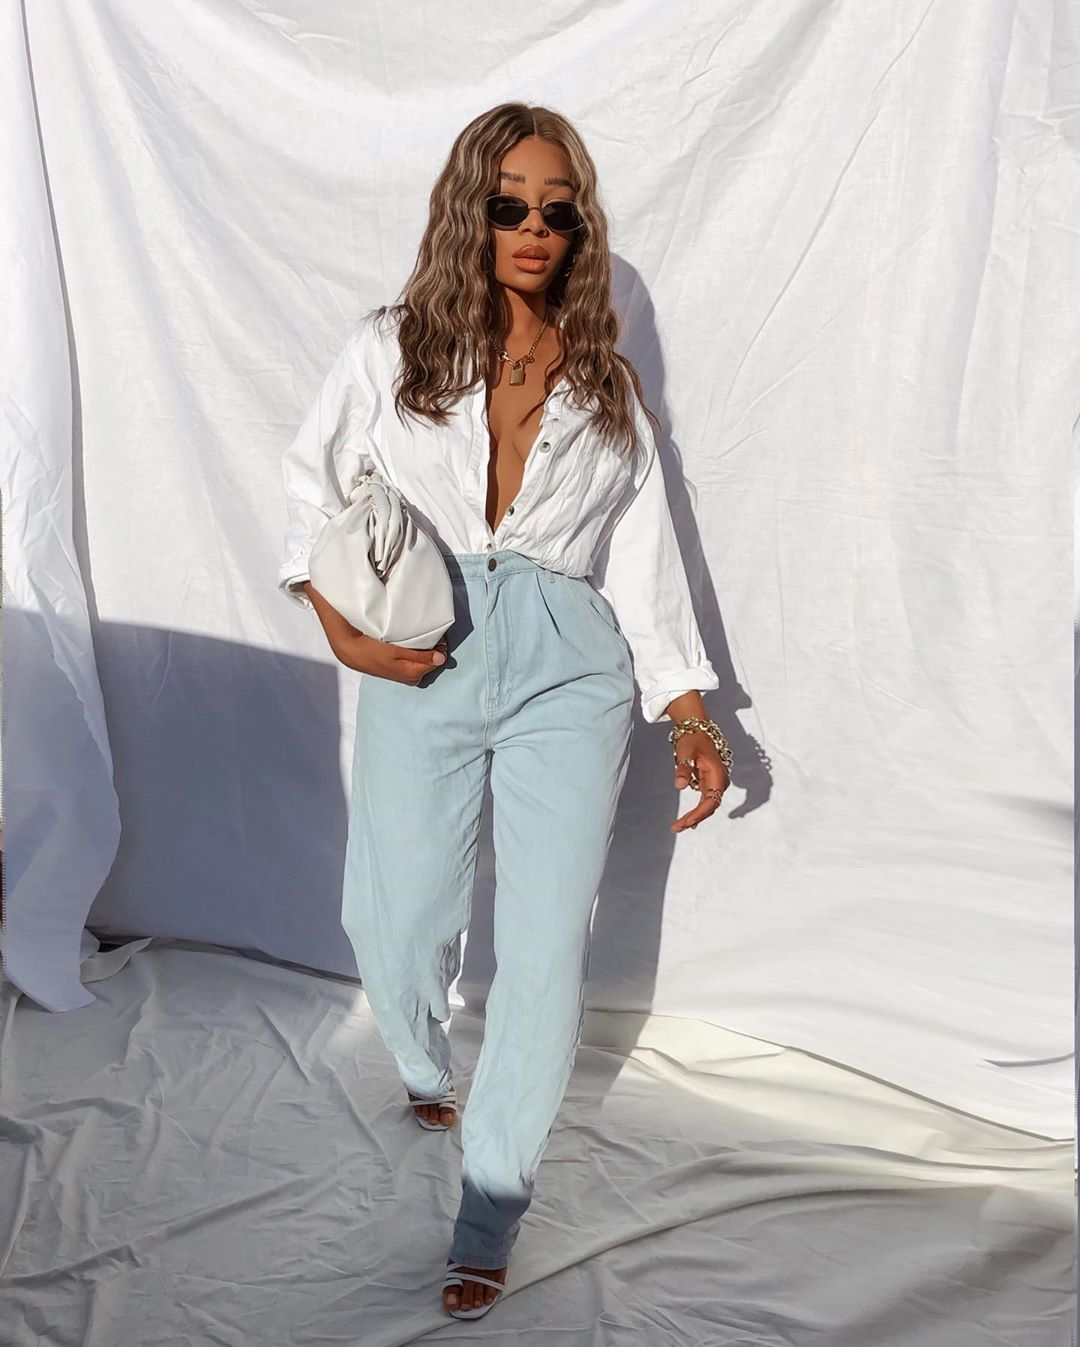 This Versatile Summer Outfit is so Easy to Wear